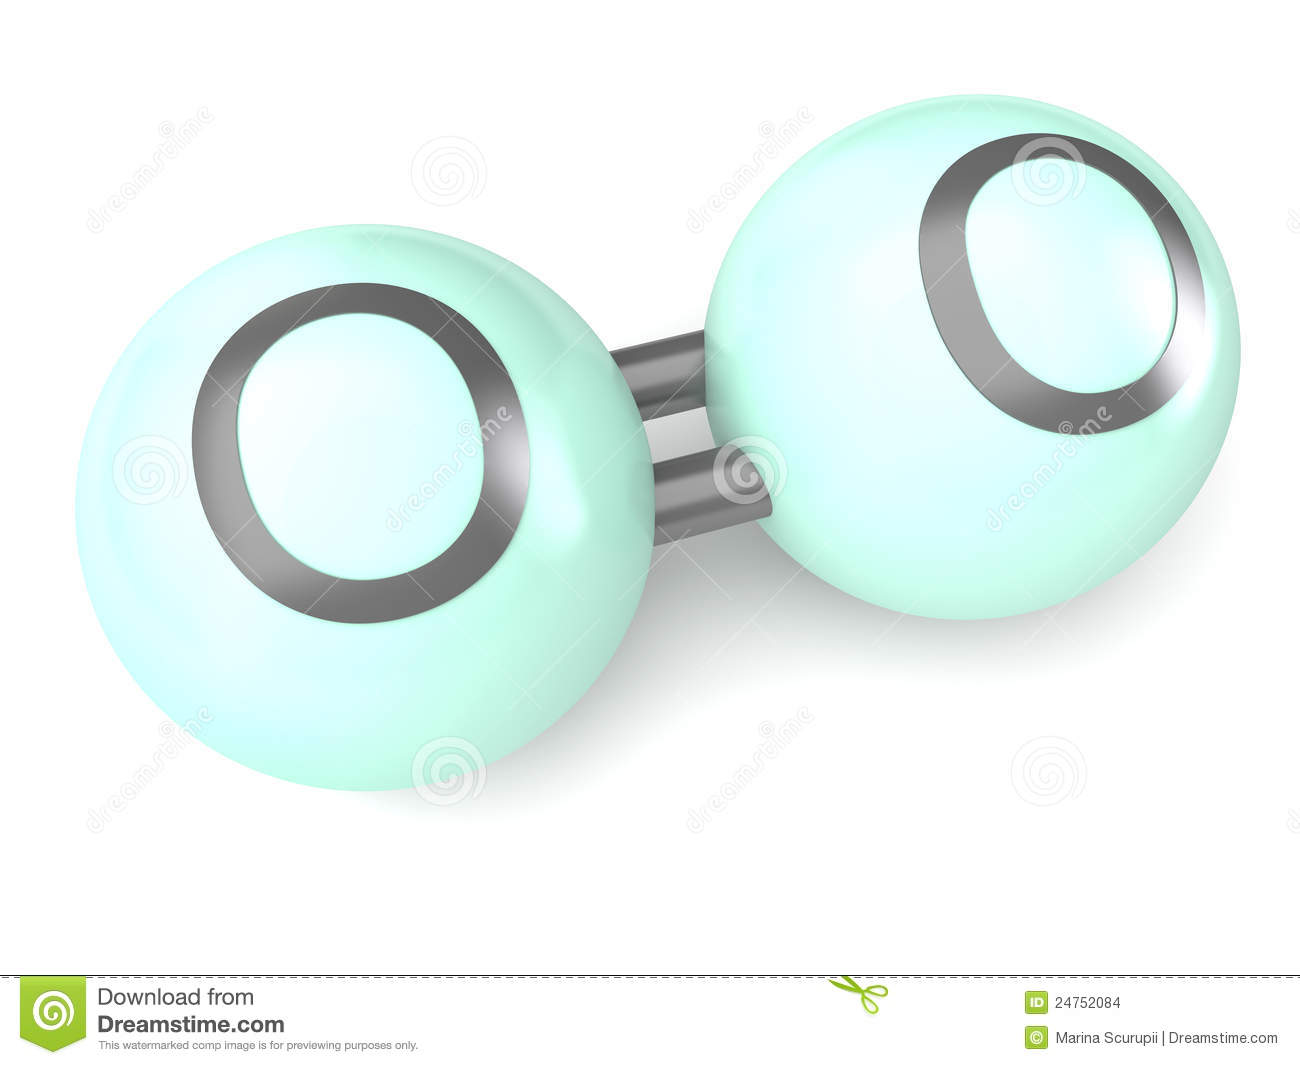 More similar stock images of ` Oxygen molecule 3d model `